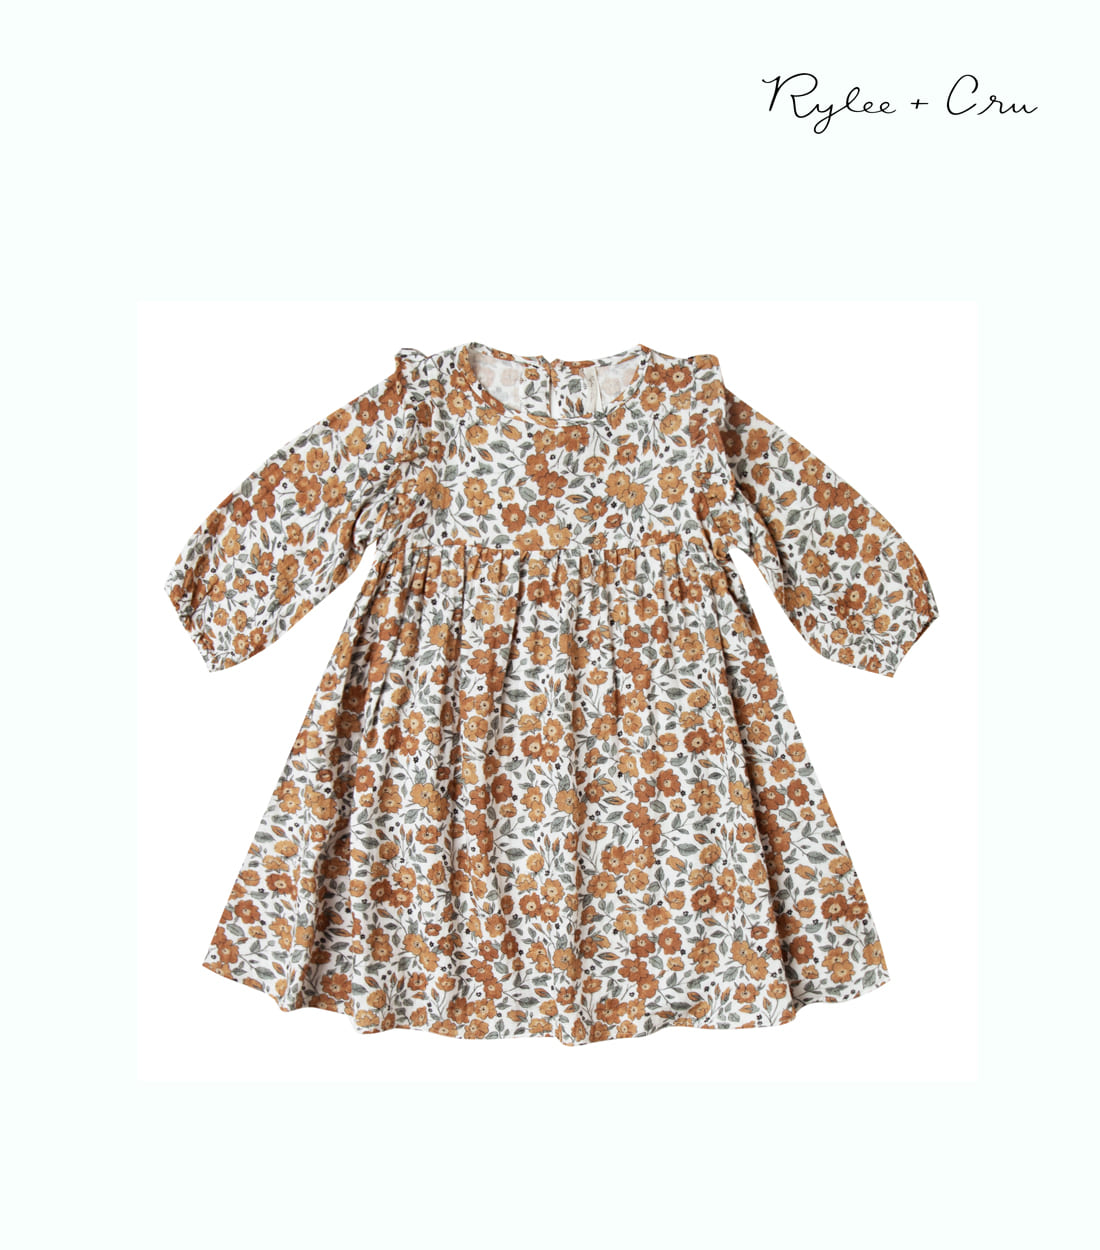 라일리앤크루 BLOOM PIPER DRESS / BLOOM